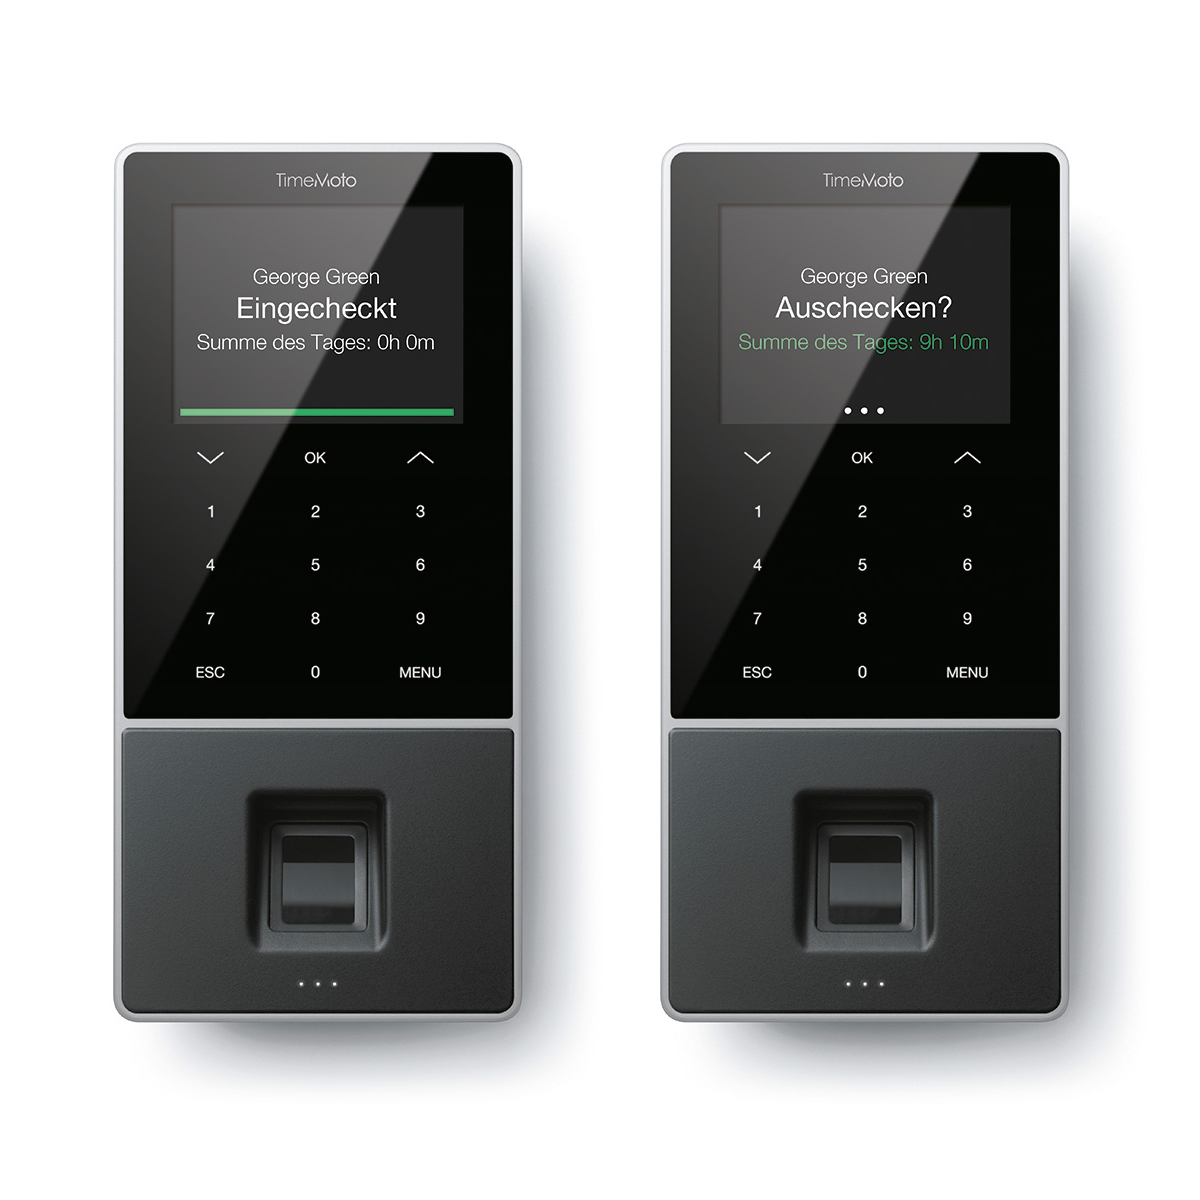 TimeMoto by Safescan TM-828 Time & Attendance System 2000 Users RFID/Fgrprint/Fob/PIN Black Ref 125-0588